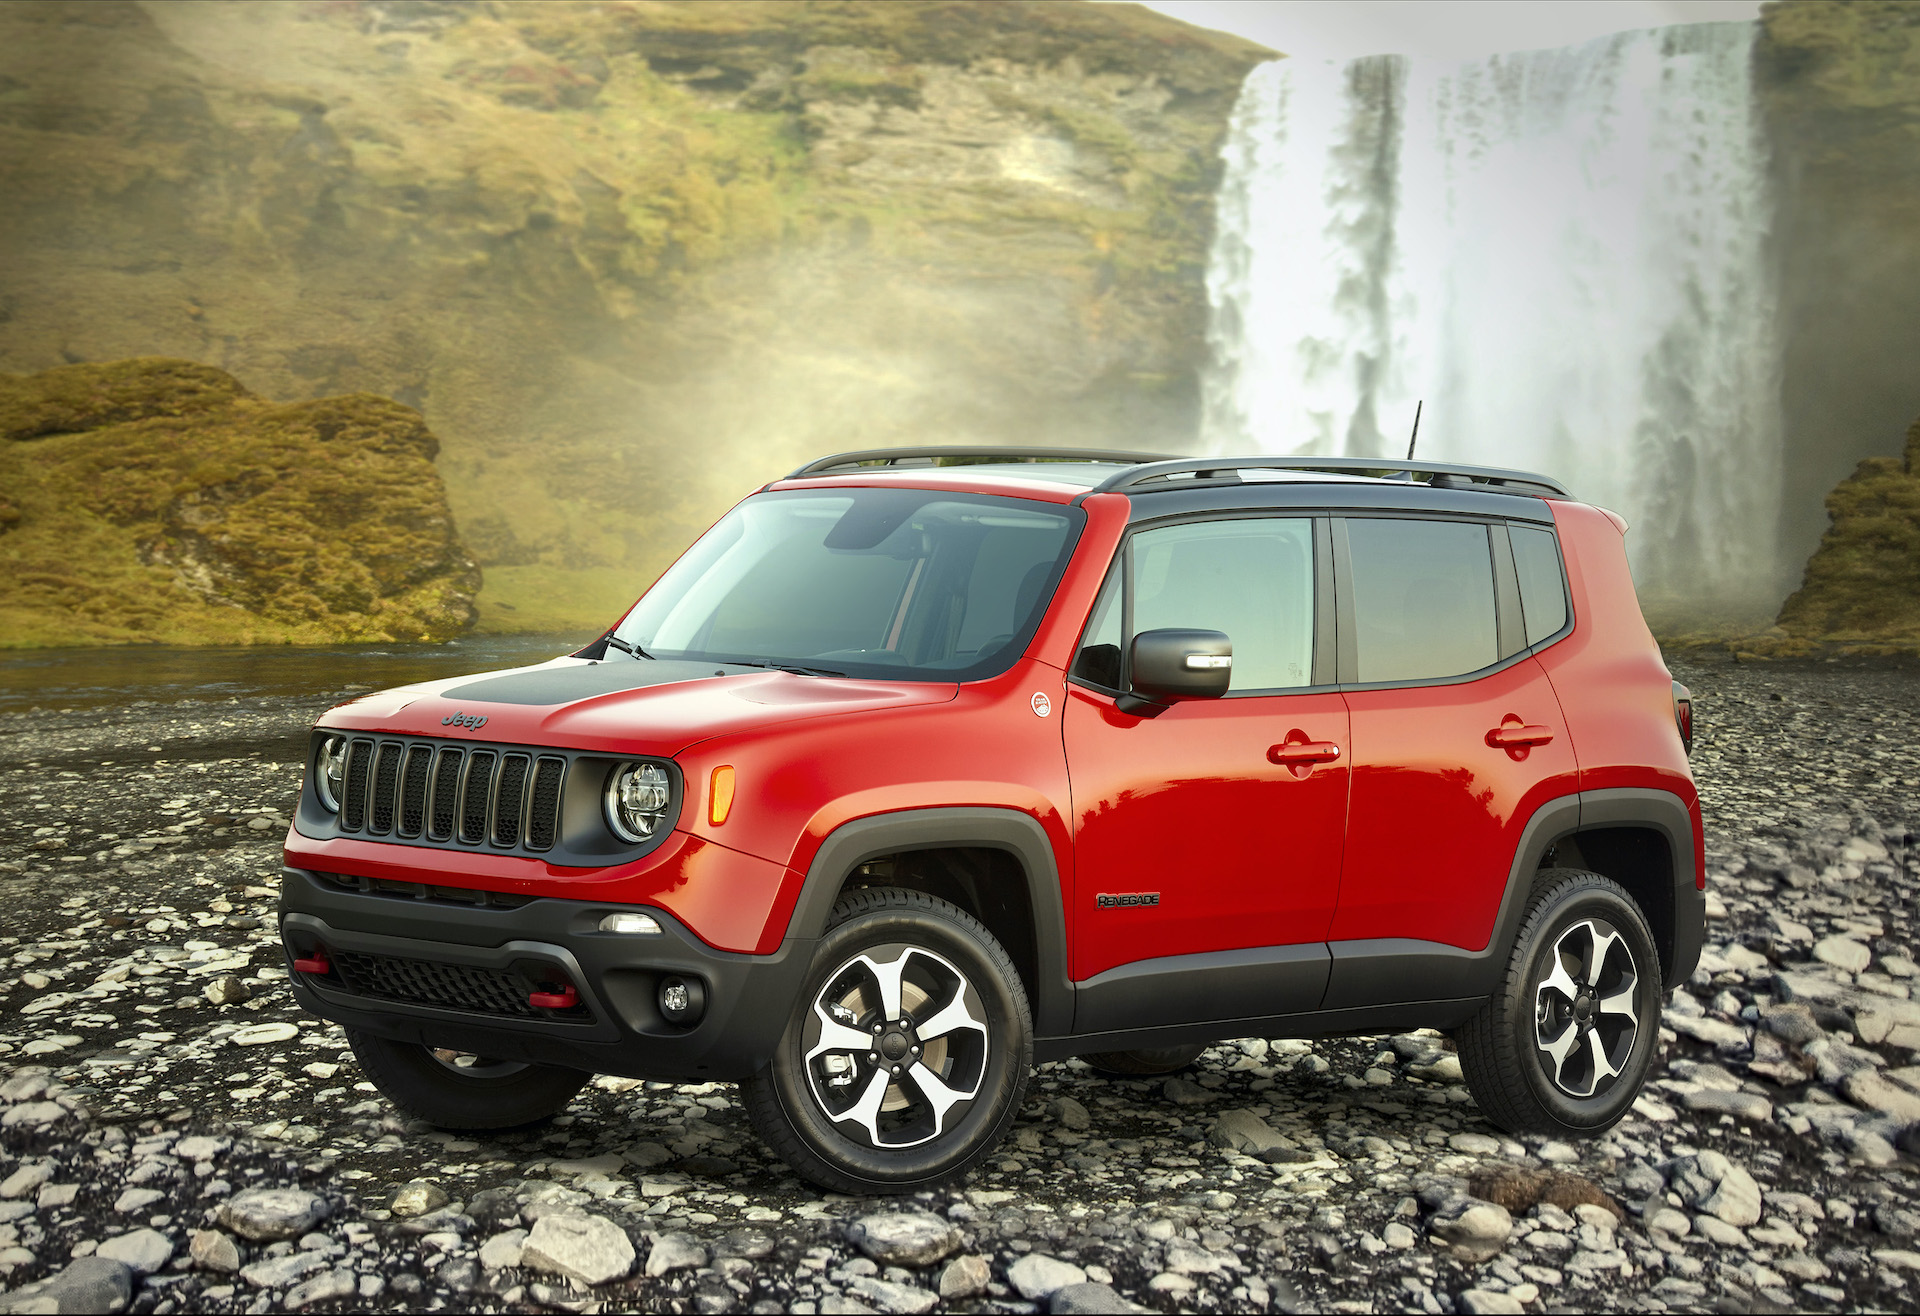 2020 Jeep Renegade Review, Ratings, Specs, Prices, and ...